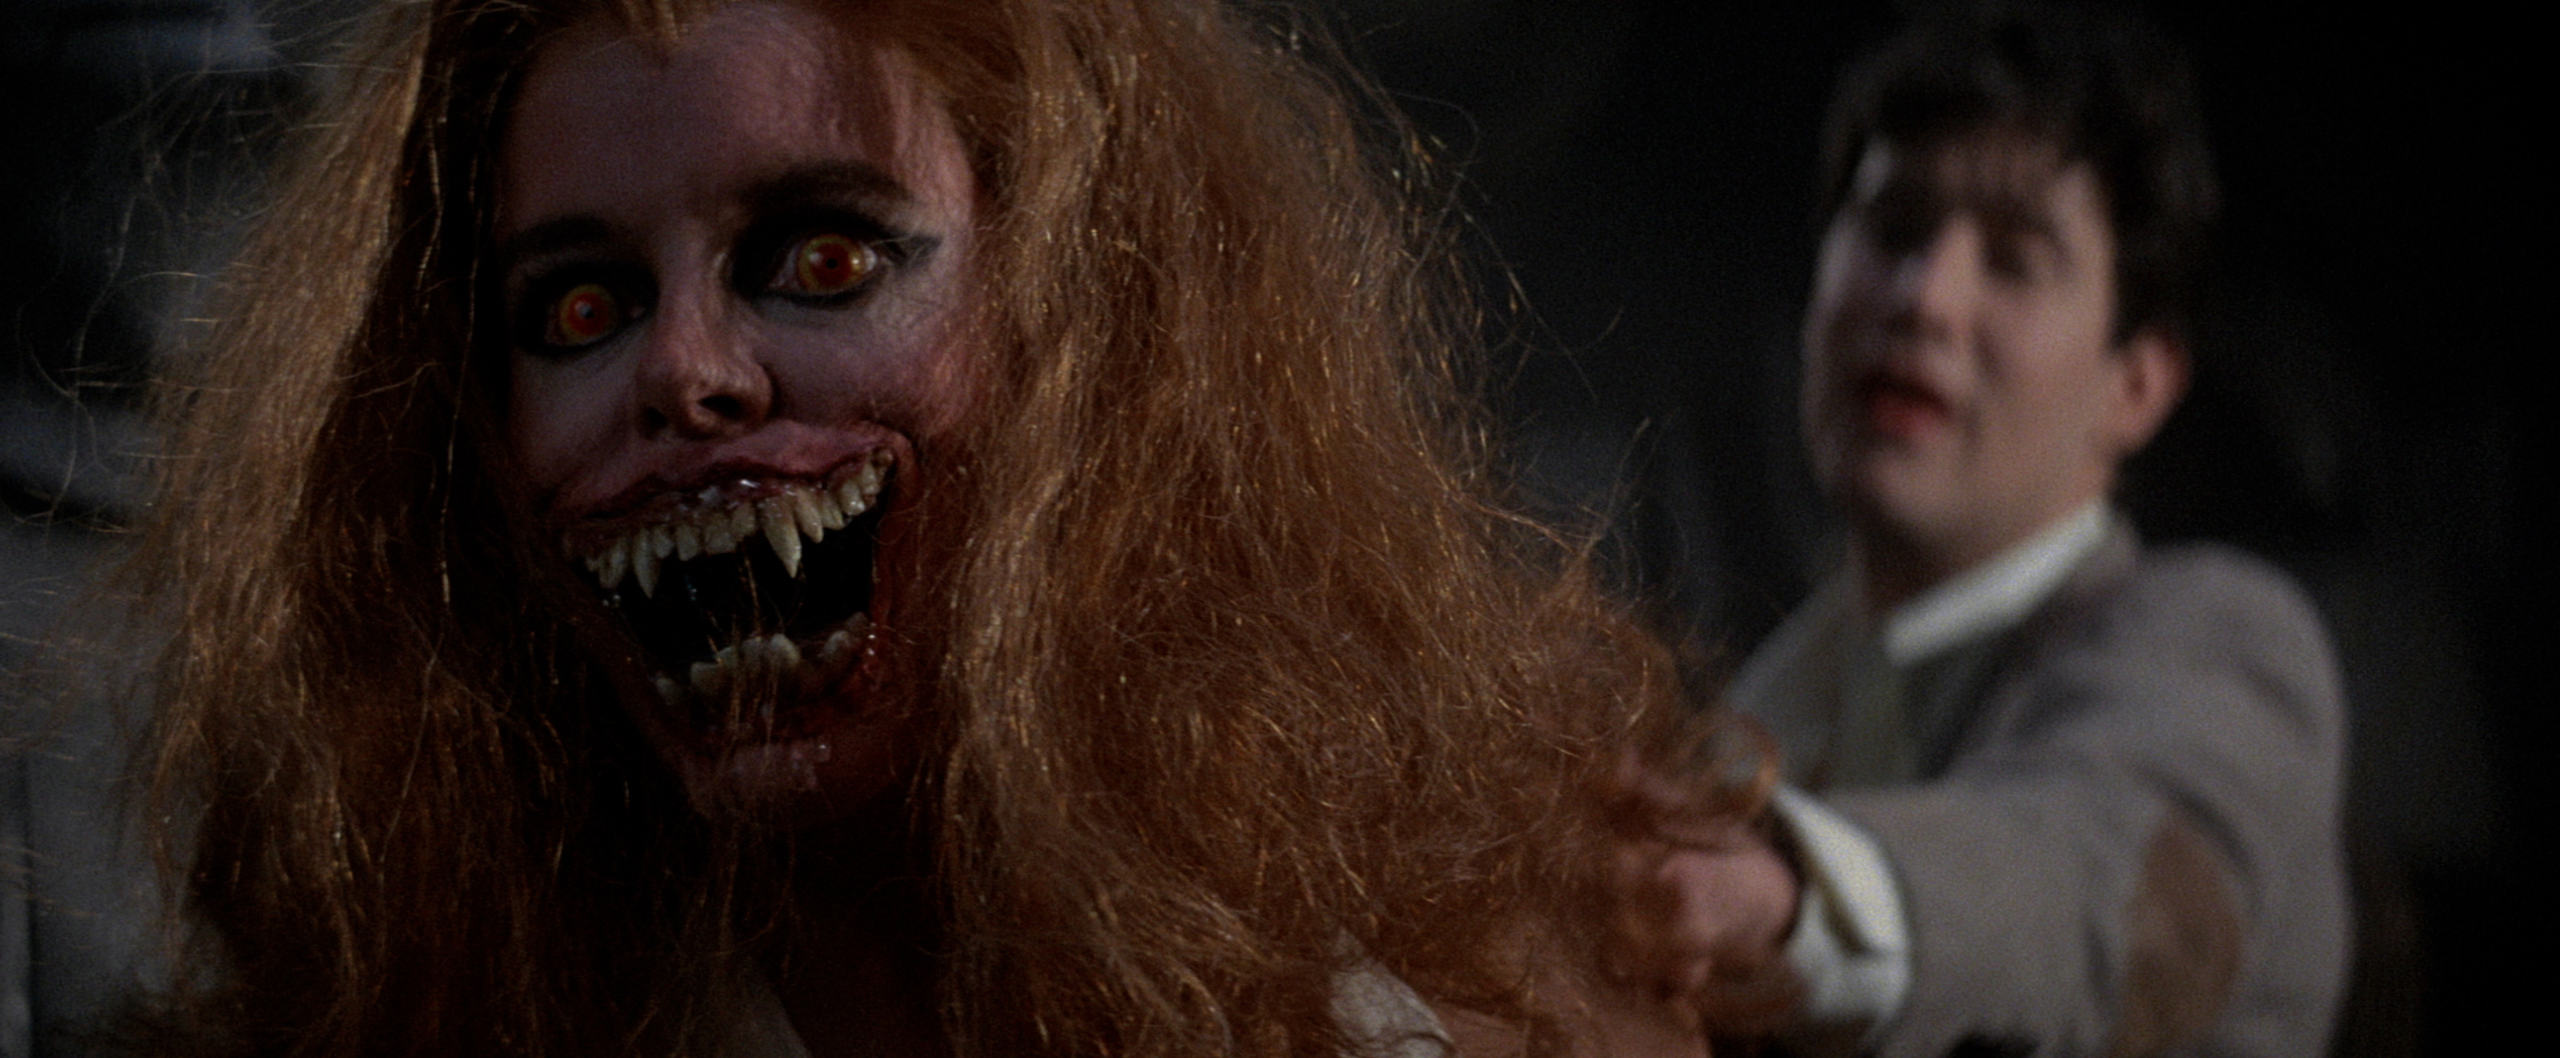 Blu-Ray Review: Fright Night (1985) - Electric Shadows